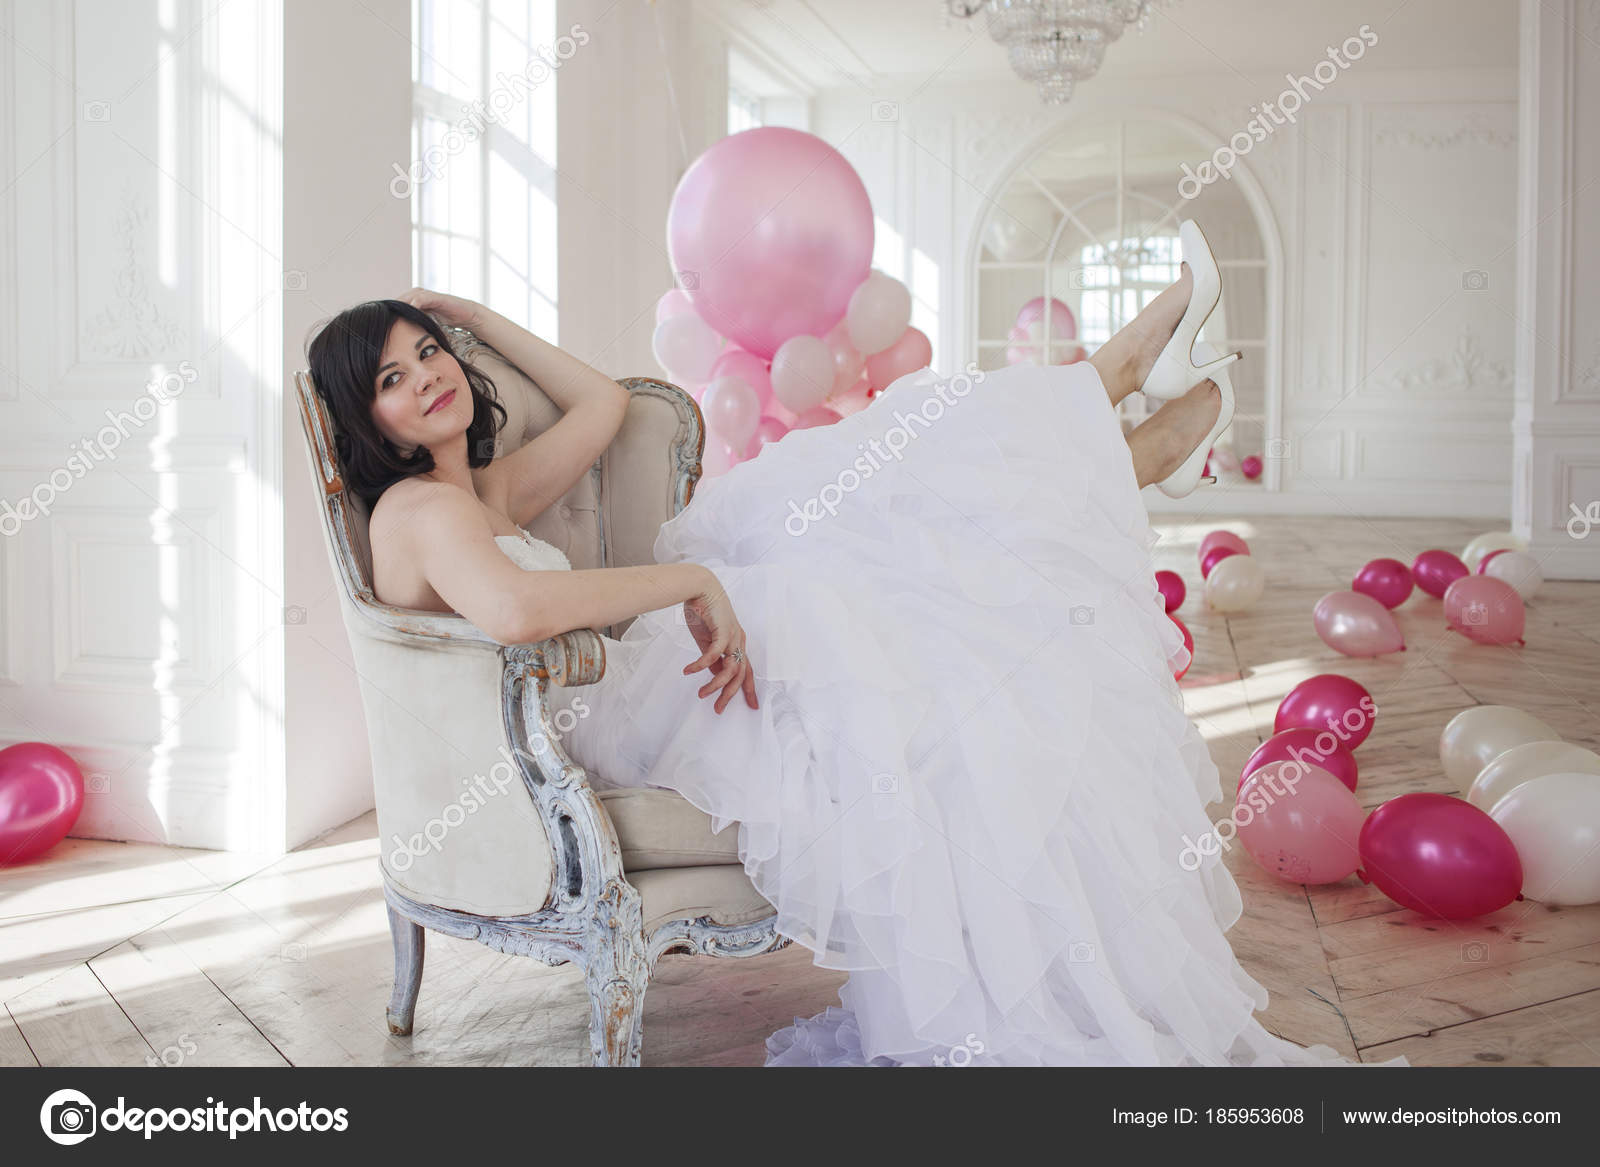 Young Woman In Wedding Dress In Luxury Interior With A Mass Of Pink